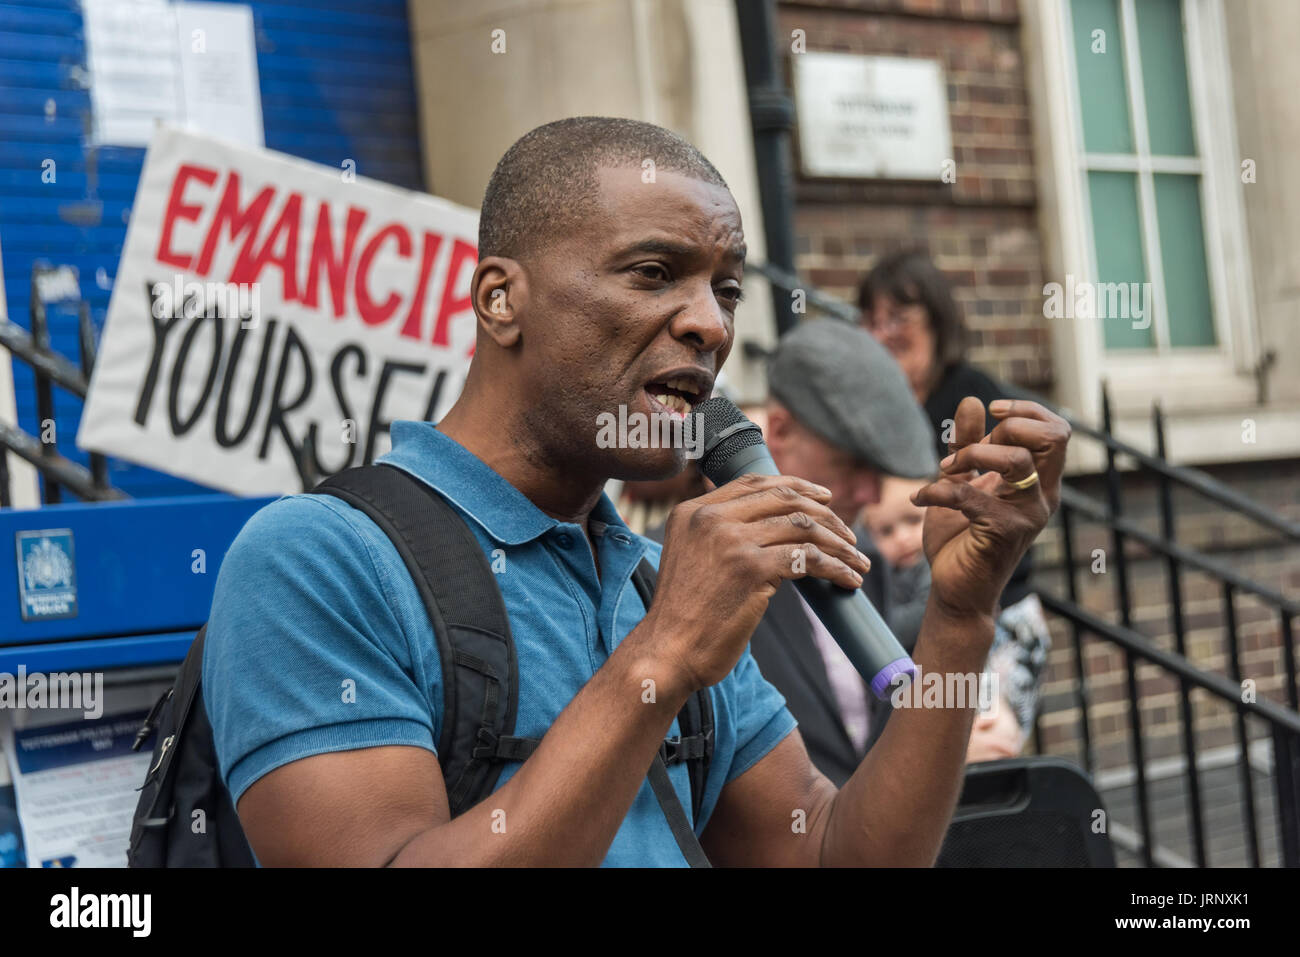 London, UK. 4th Aug, 2017. London, UK. 4th August 2017. Tottenham community activist Stafford Scott speaks at the rally at Tottenham Police Station remembering the death of Mark Duggan on the sixth anniversary of his killing by police, and also the police killing of other members of the Tottenham community - Cynthia Jarrett, Joy Gardner, Roger Sylvester, Mark Duggan and Jermaine Baker and the recent murders of Rashan Charles, Darren Cumberbatch and Edson Da Costa. Led by Stafford Scott, there was poetry, a minute of silence and speeches from family members as well as local activists, Becky - Stock Image